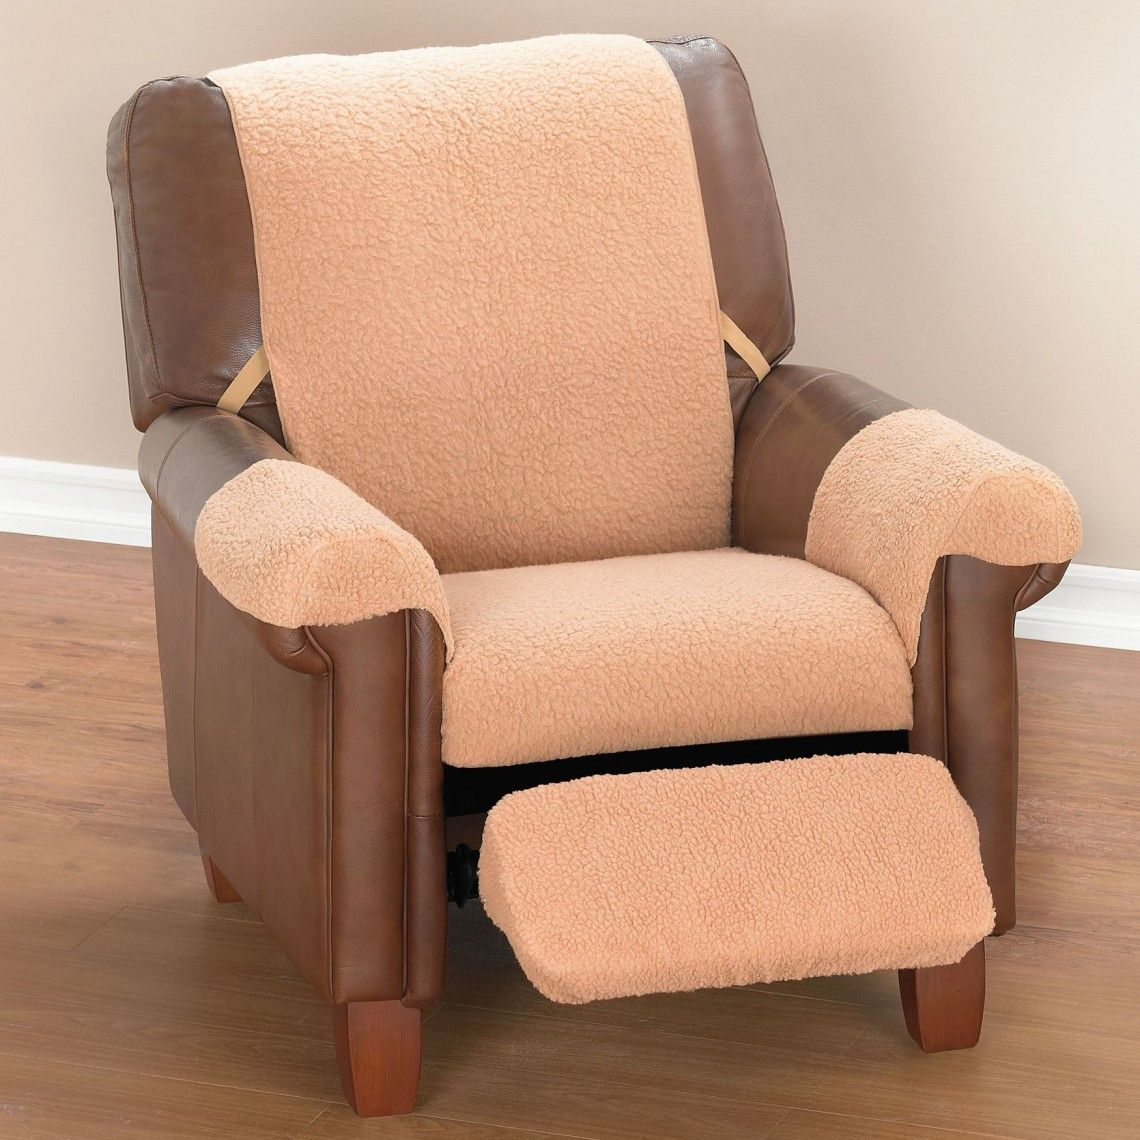 Oversized Recliner Chair Covers Lazy Boy Lift Stylish For Nursery Room Design Lazyboy Rocker Recliners